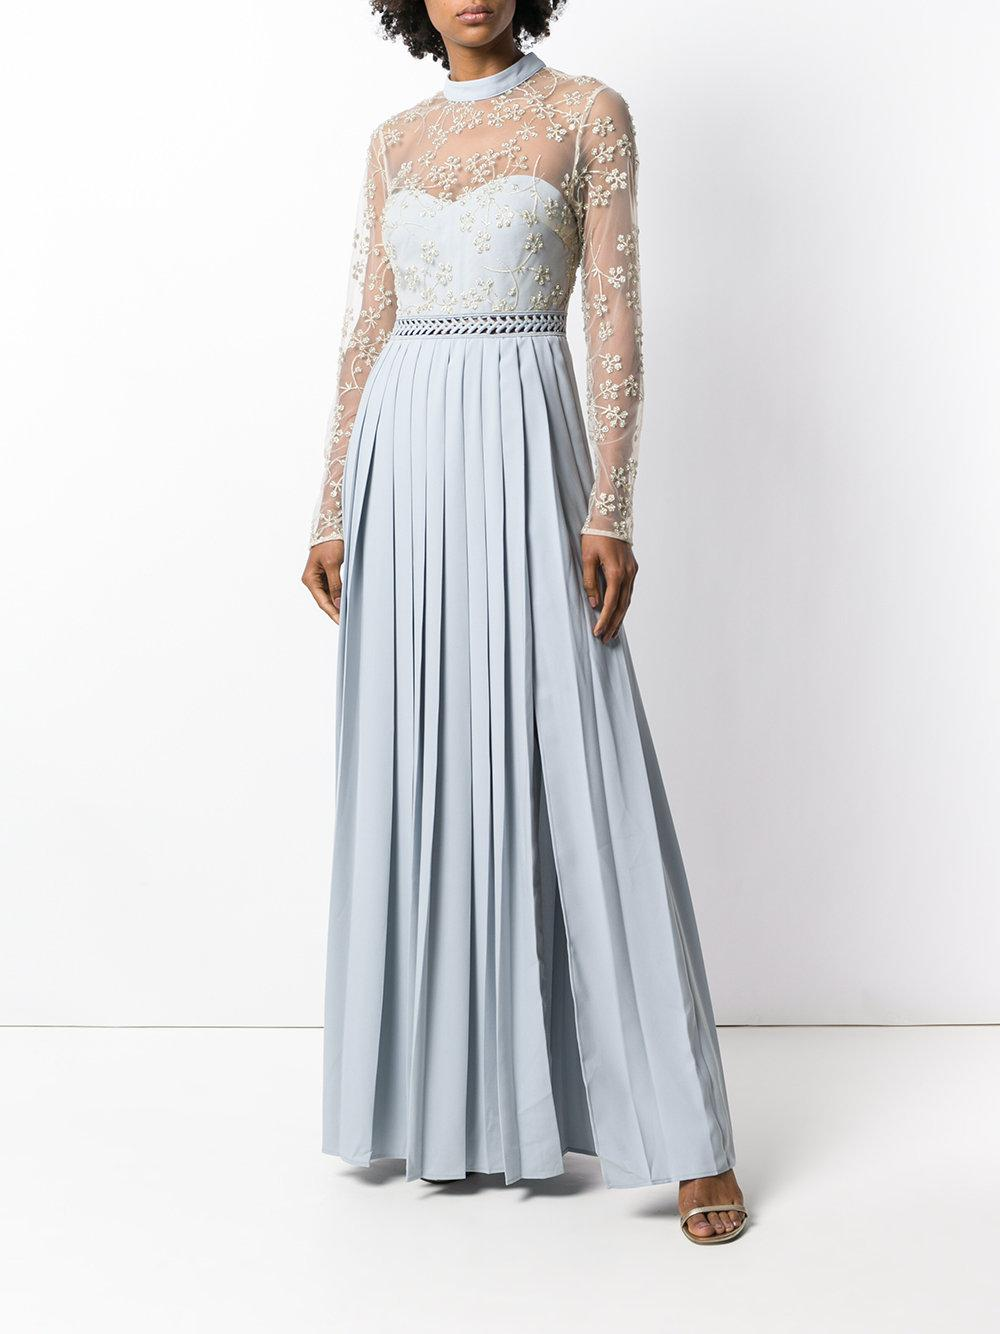 5560212fa4894 Lyst - Self-Portrait Pleated Lace Embellished Dress in Blue